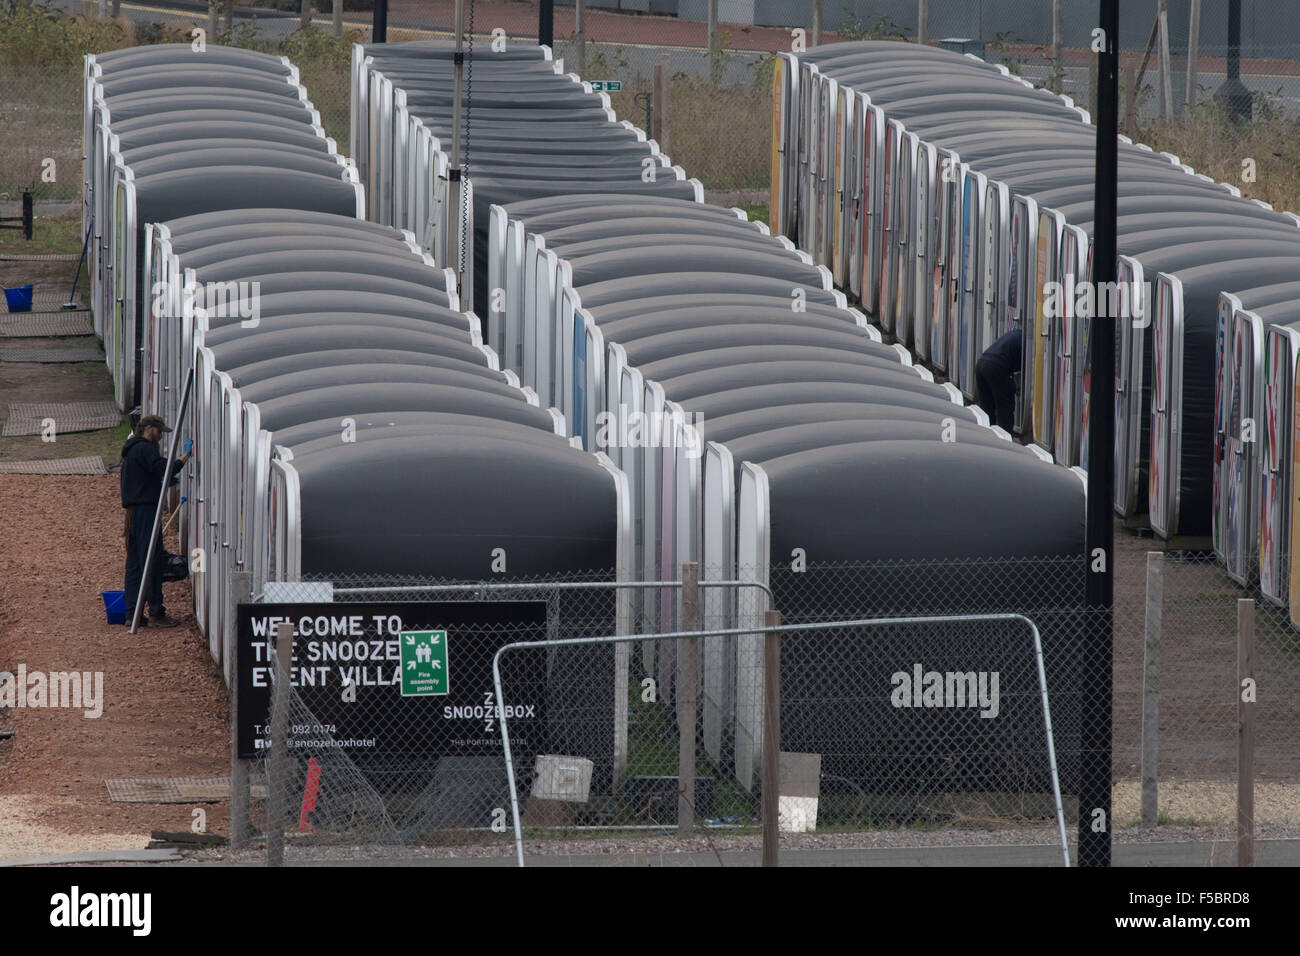 The temporary Snoozebox hotel at Porth Teigr Cardiff Bay which was set up for the Rugby World Cup 2015. - Stock Image